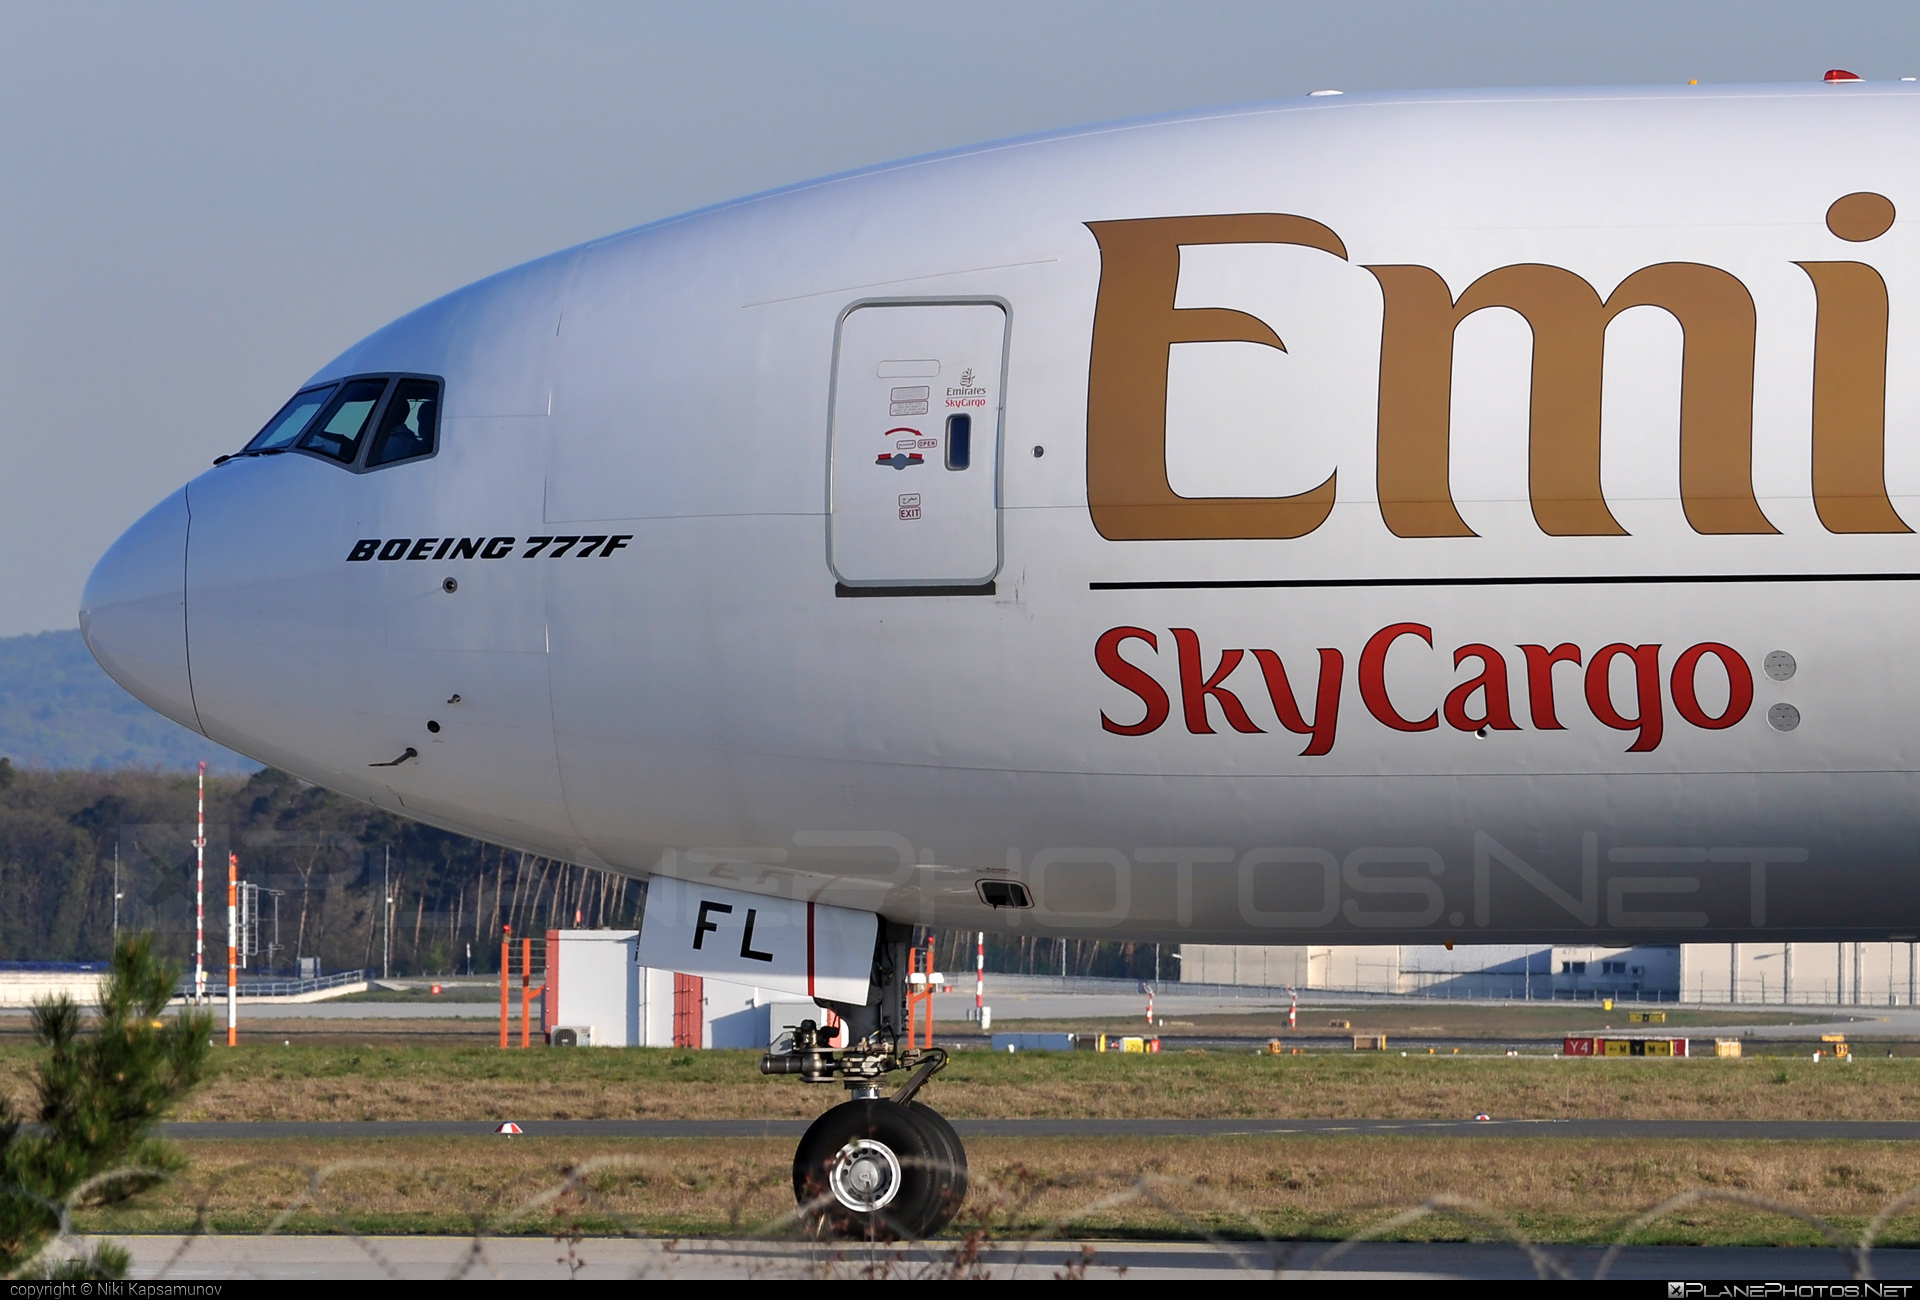 Boeing 777F - A6-EFL operated by Emirates SkyCargo #b777 #b777f #b777freighter #boeing #boeing777 #tripleseven